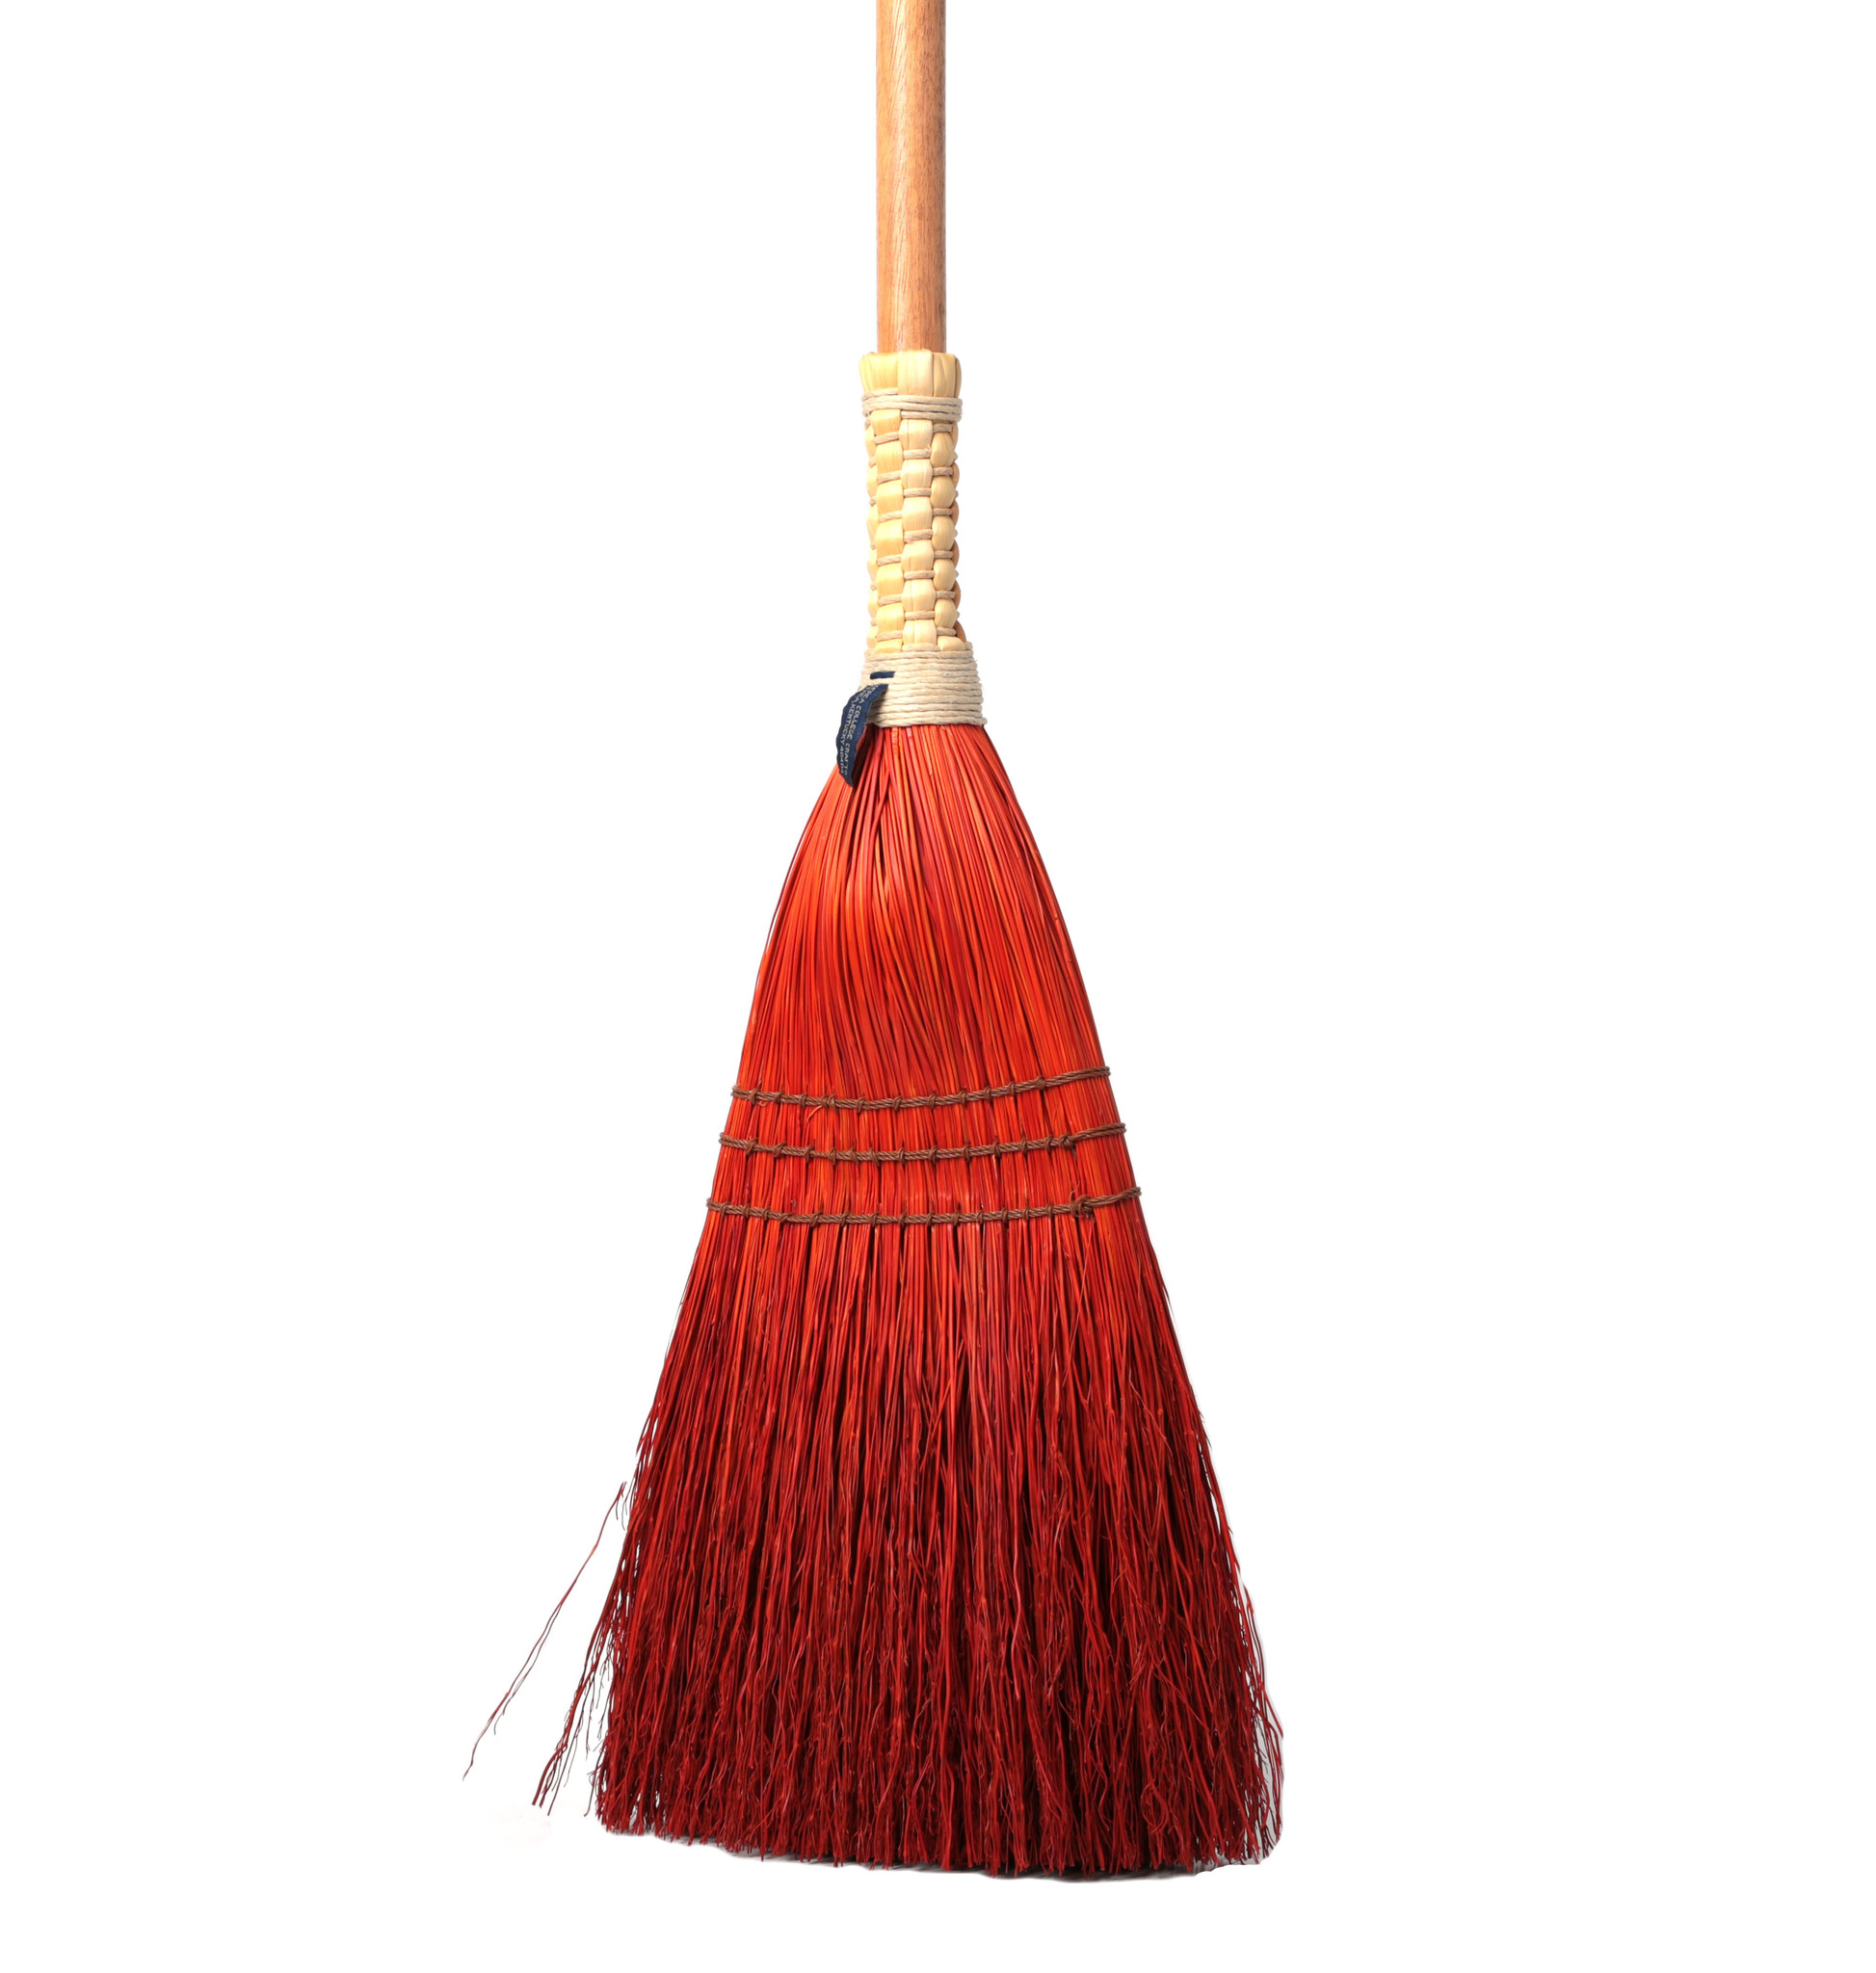 Shaker Braid Broom - Turned Handle-4